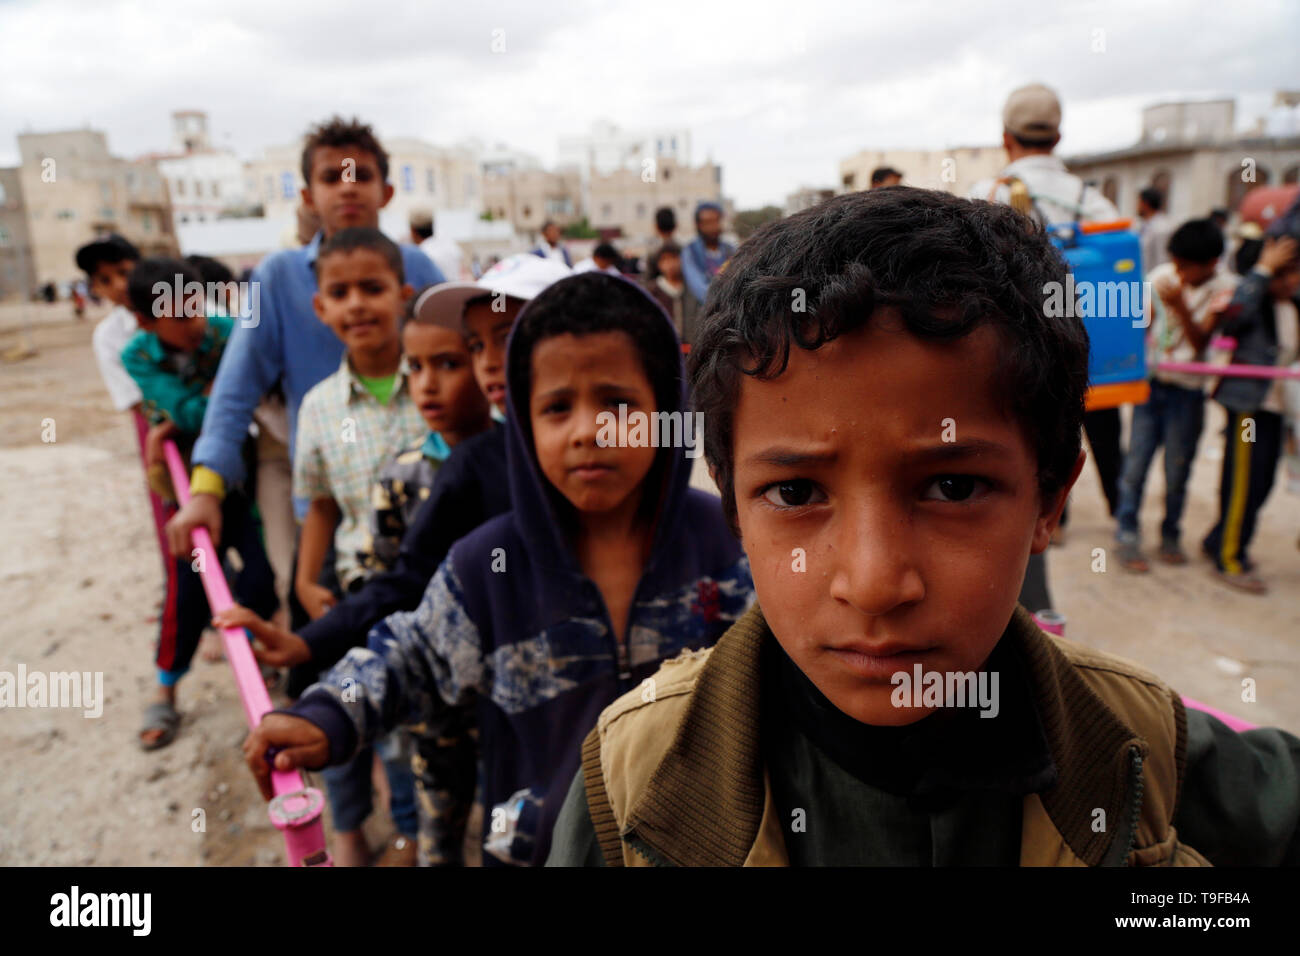 Sanaa, Yemen. 18th May, 2019. Yemeni children queue to get food from a charity foundation in Sanaa, Yemen, on May 18, 2019. Ten million Yemenis are still reliant on emergency food assistance to survive, UN Under-Secretary-General for Humanitarian Affairs and Emergency Relief Coordinator Mark Lowcock told the Security Council on May 15. Credit: Mohammed Mohammed/Xinhua/Alamy Live News Credit: Xinhua/Alamy Live News - Stock Image